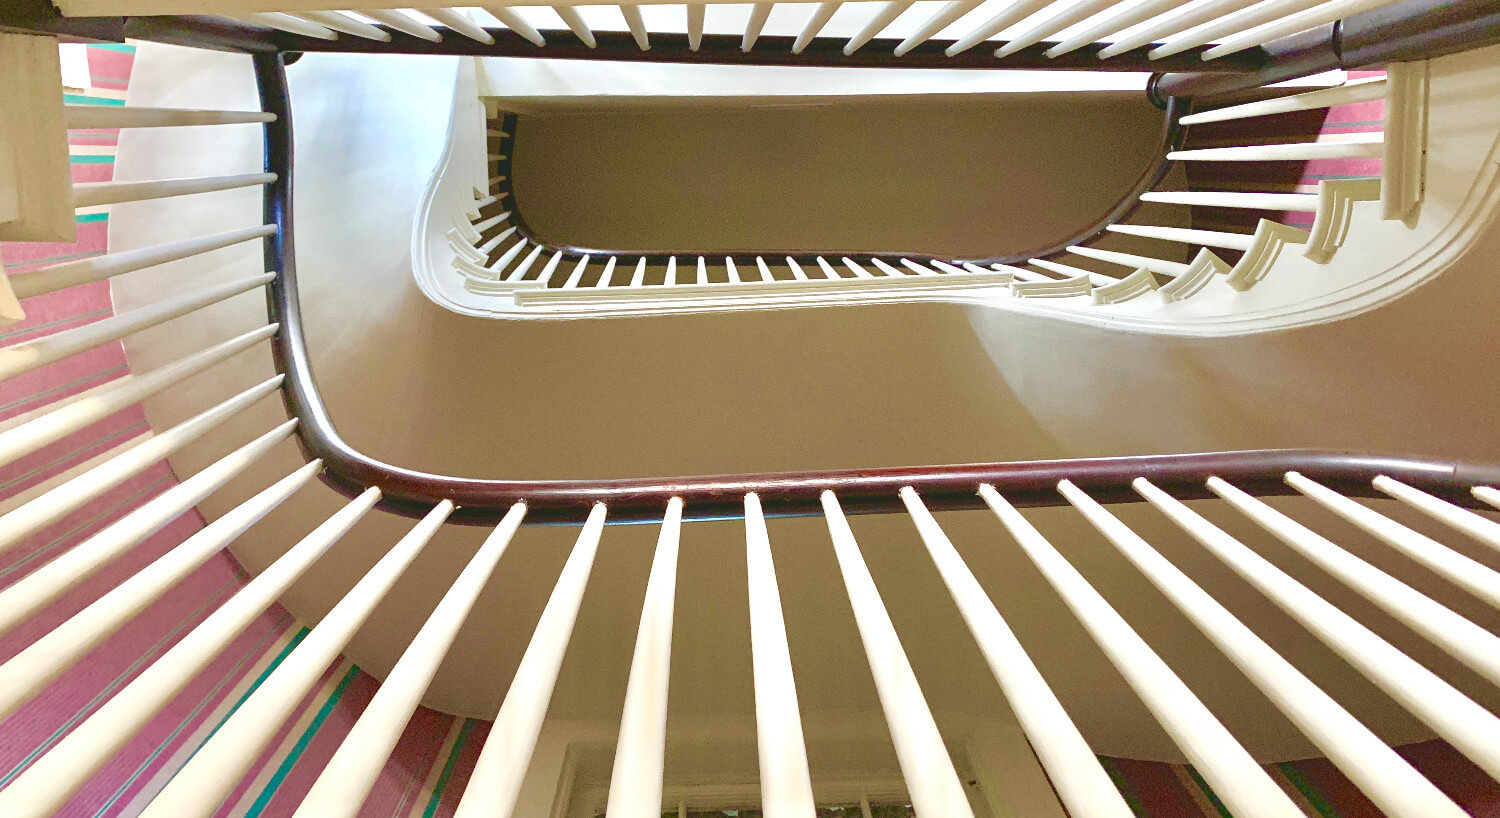 View of staircase spindles winding up from the bottom level.